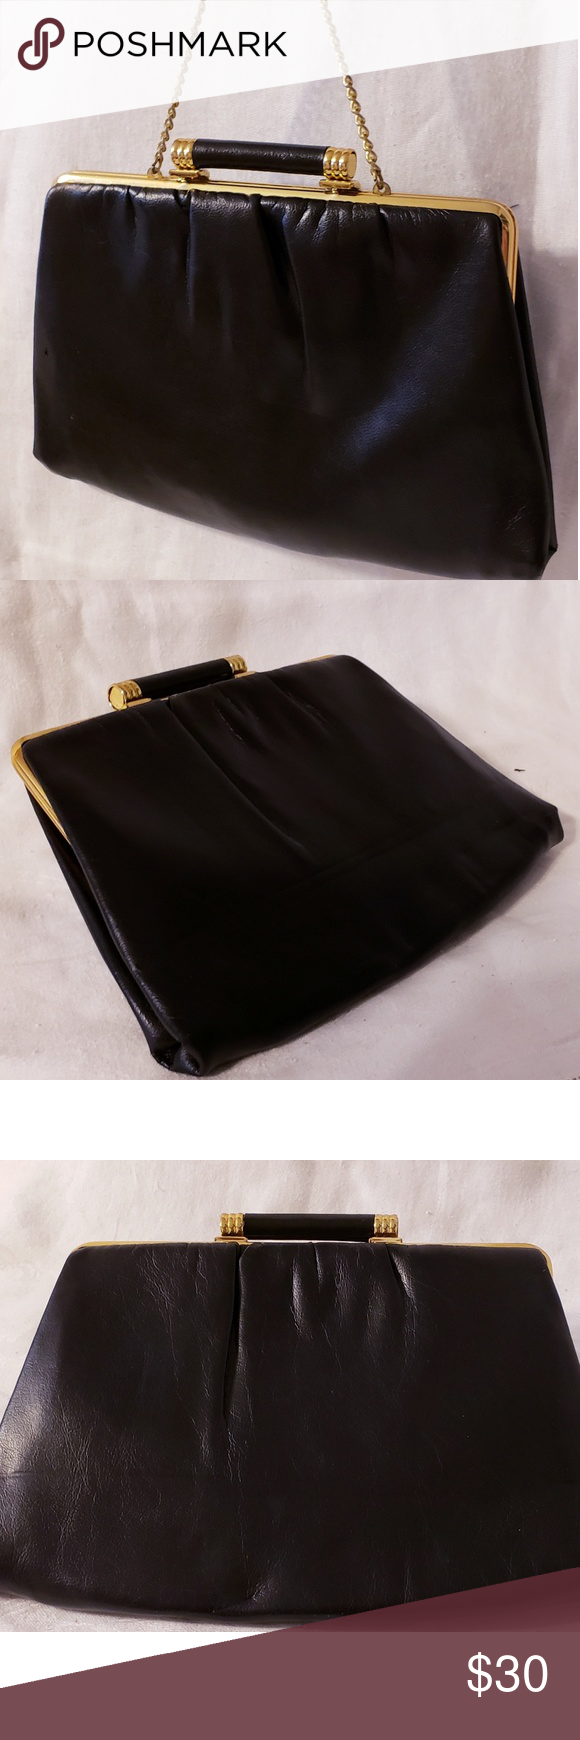 MCM Vintage Black Leather and Gold Chained Clutch True Vintage MCM Black  Leather and Gold Clasp and Chain Clutch. This is a Beautiful Bag and  Flawless ... db40b62b72